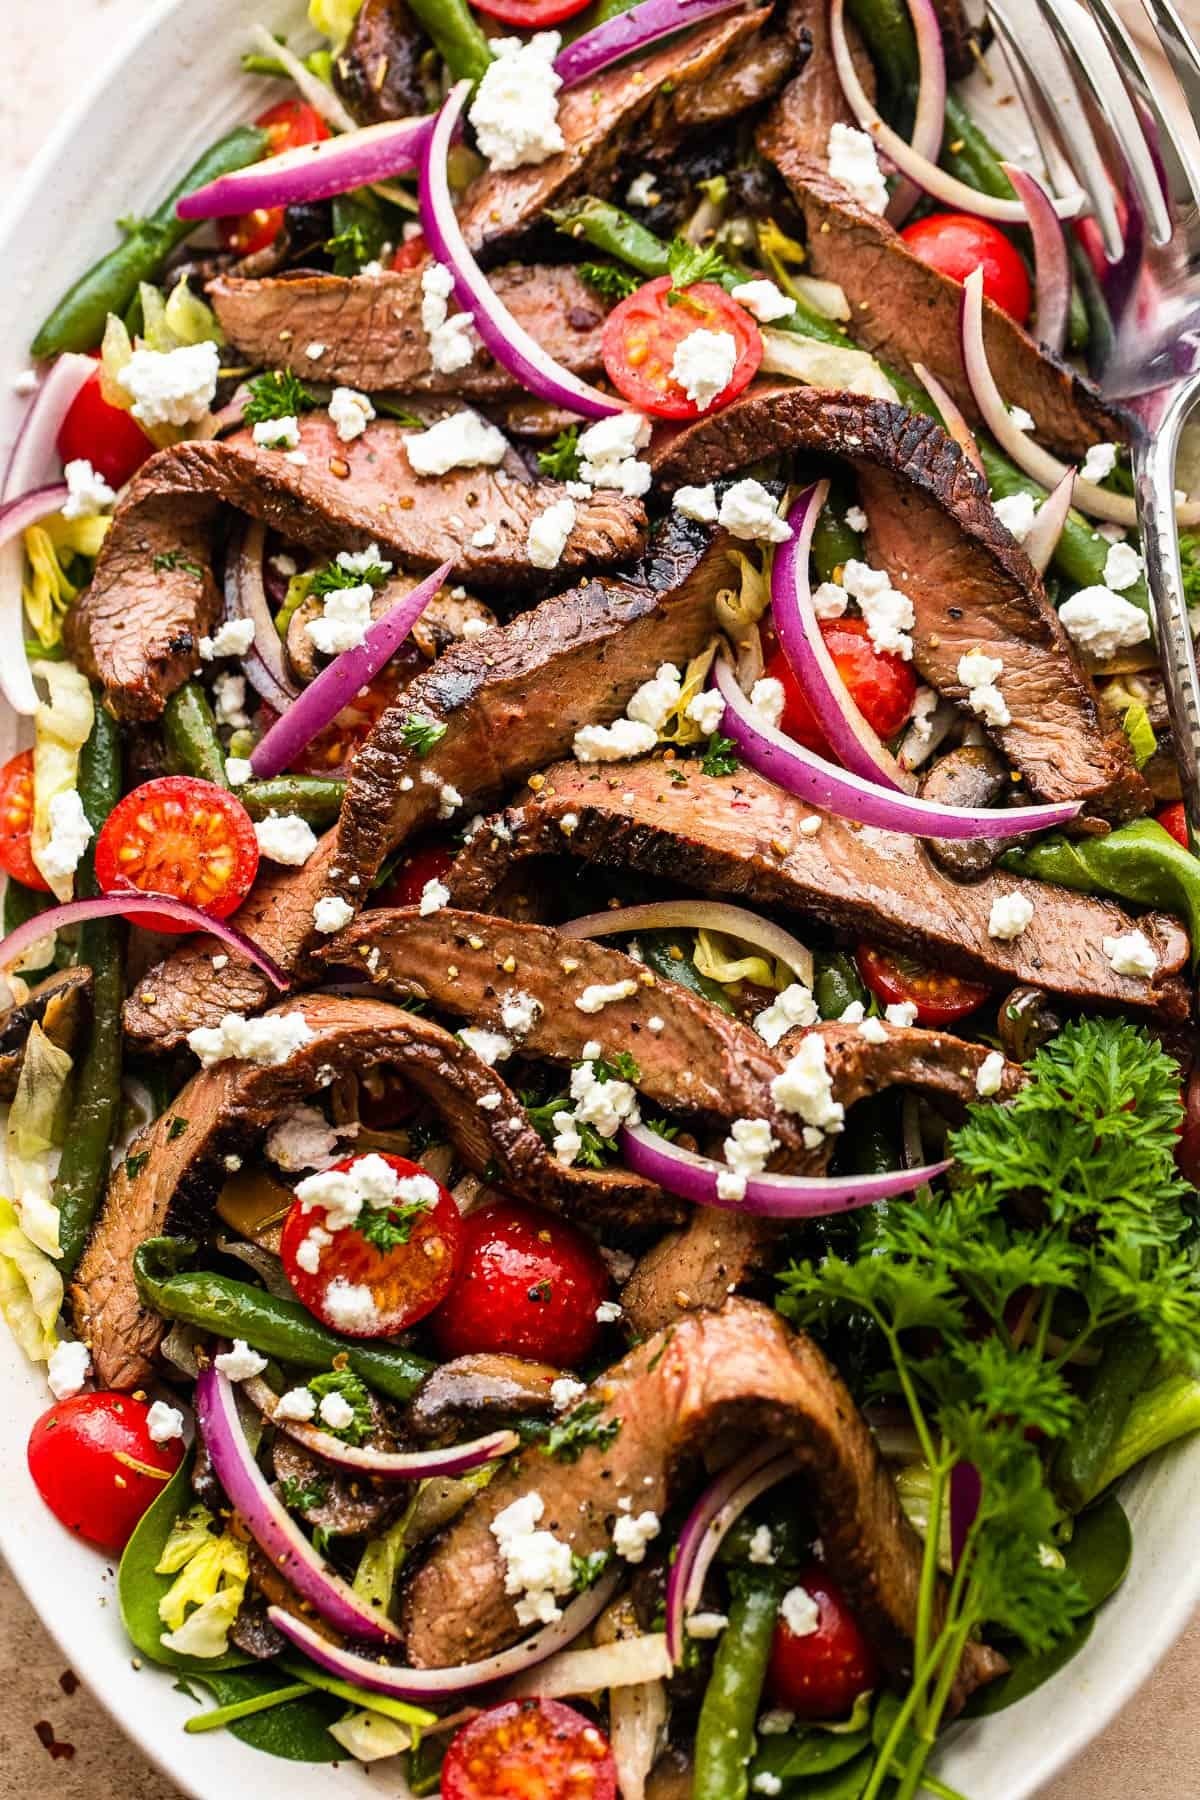 balsamic steak thinly sliced and served over lettuce with onions, grapes, and salad greens